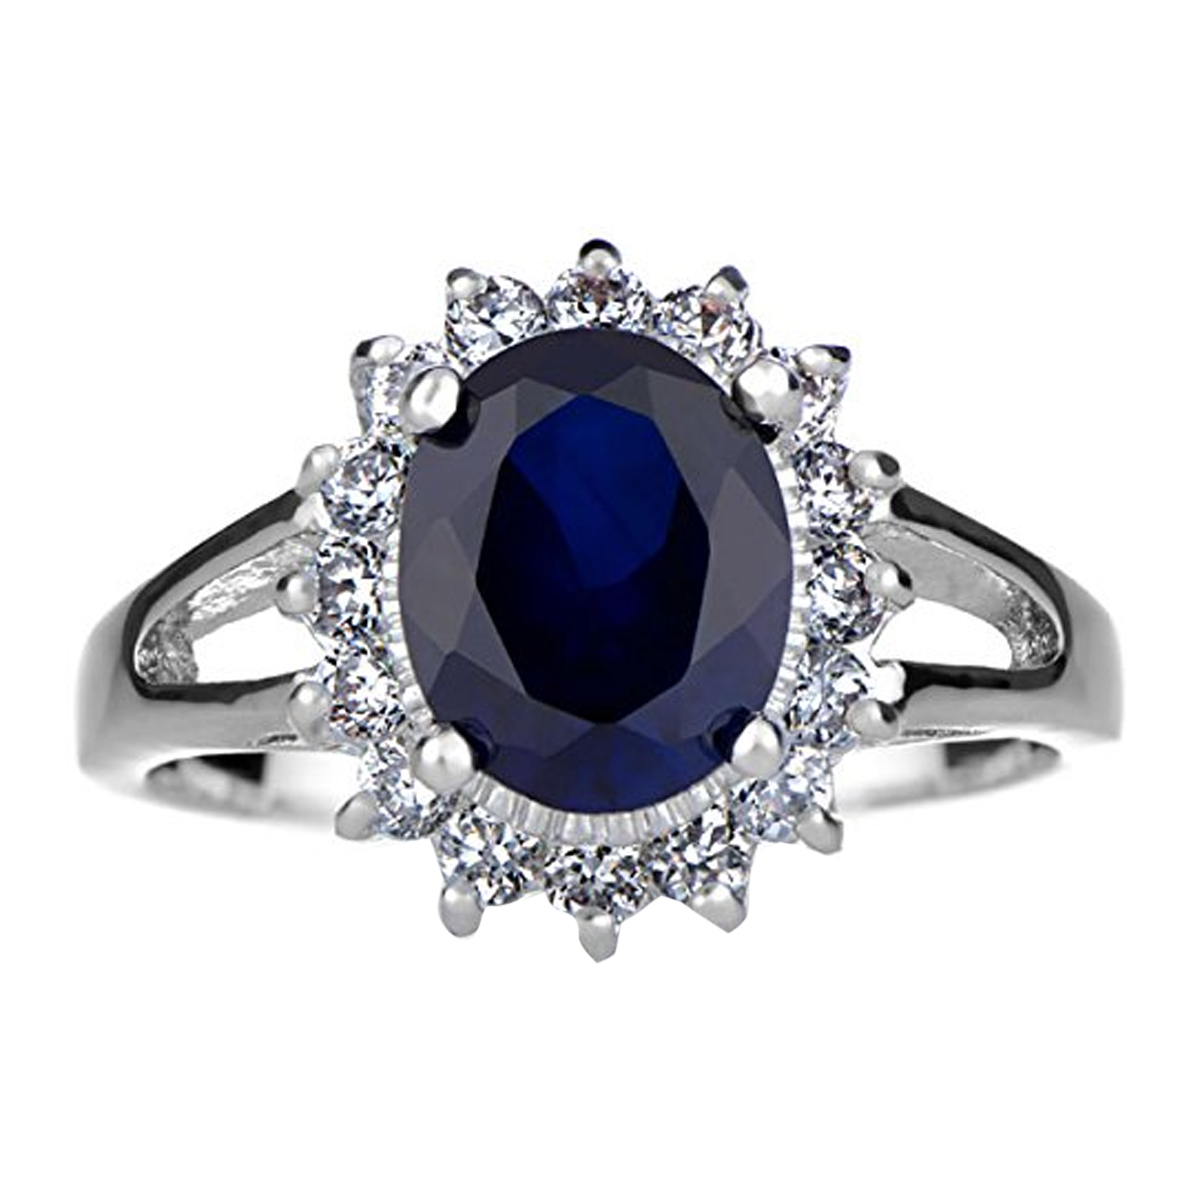 royal style wedding ring silvertone roll off image to close zoom window - Princess Diana Wedding Ring